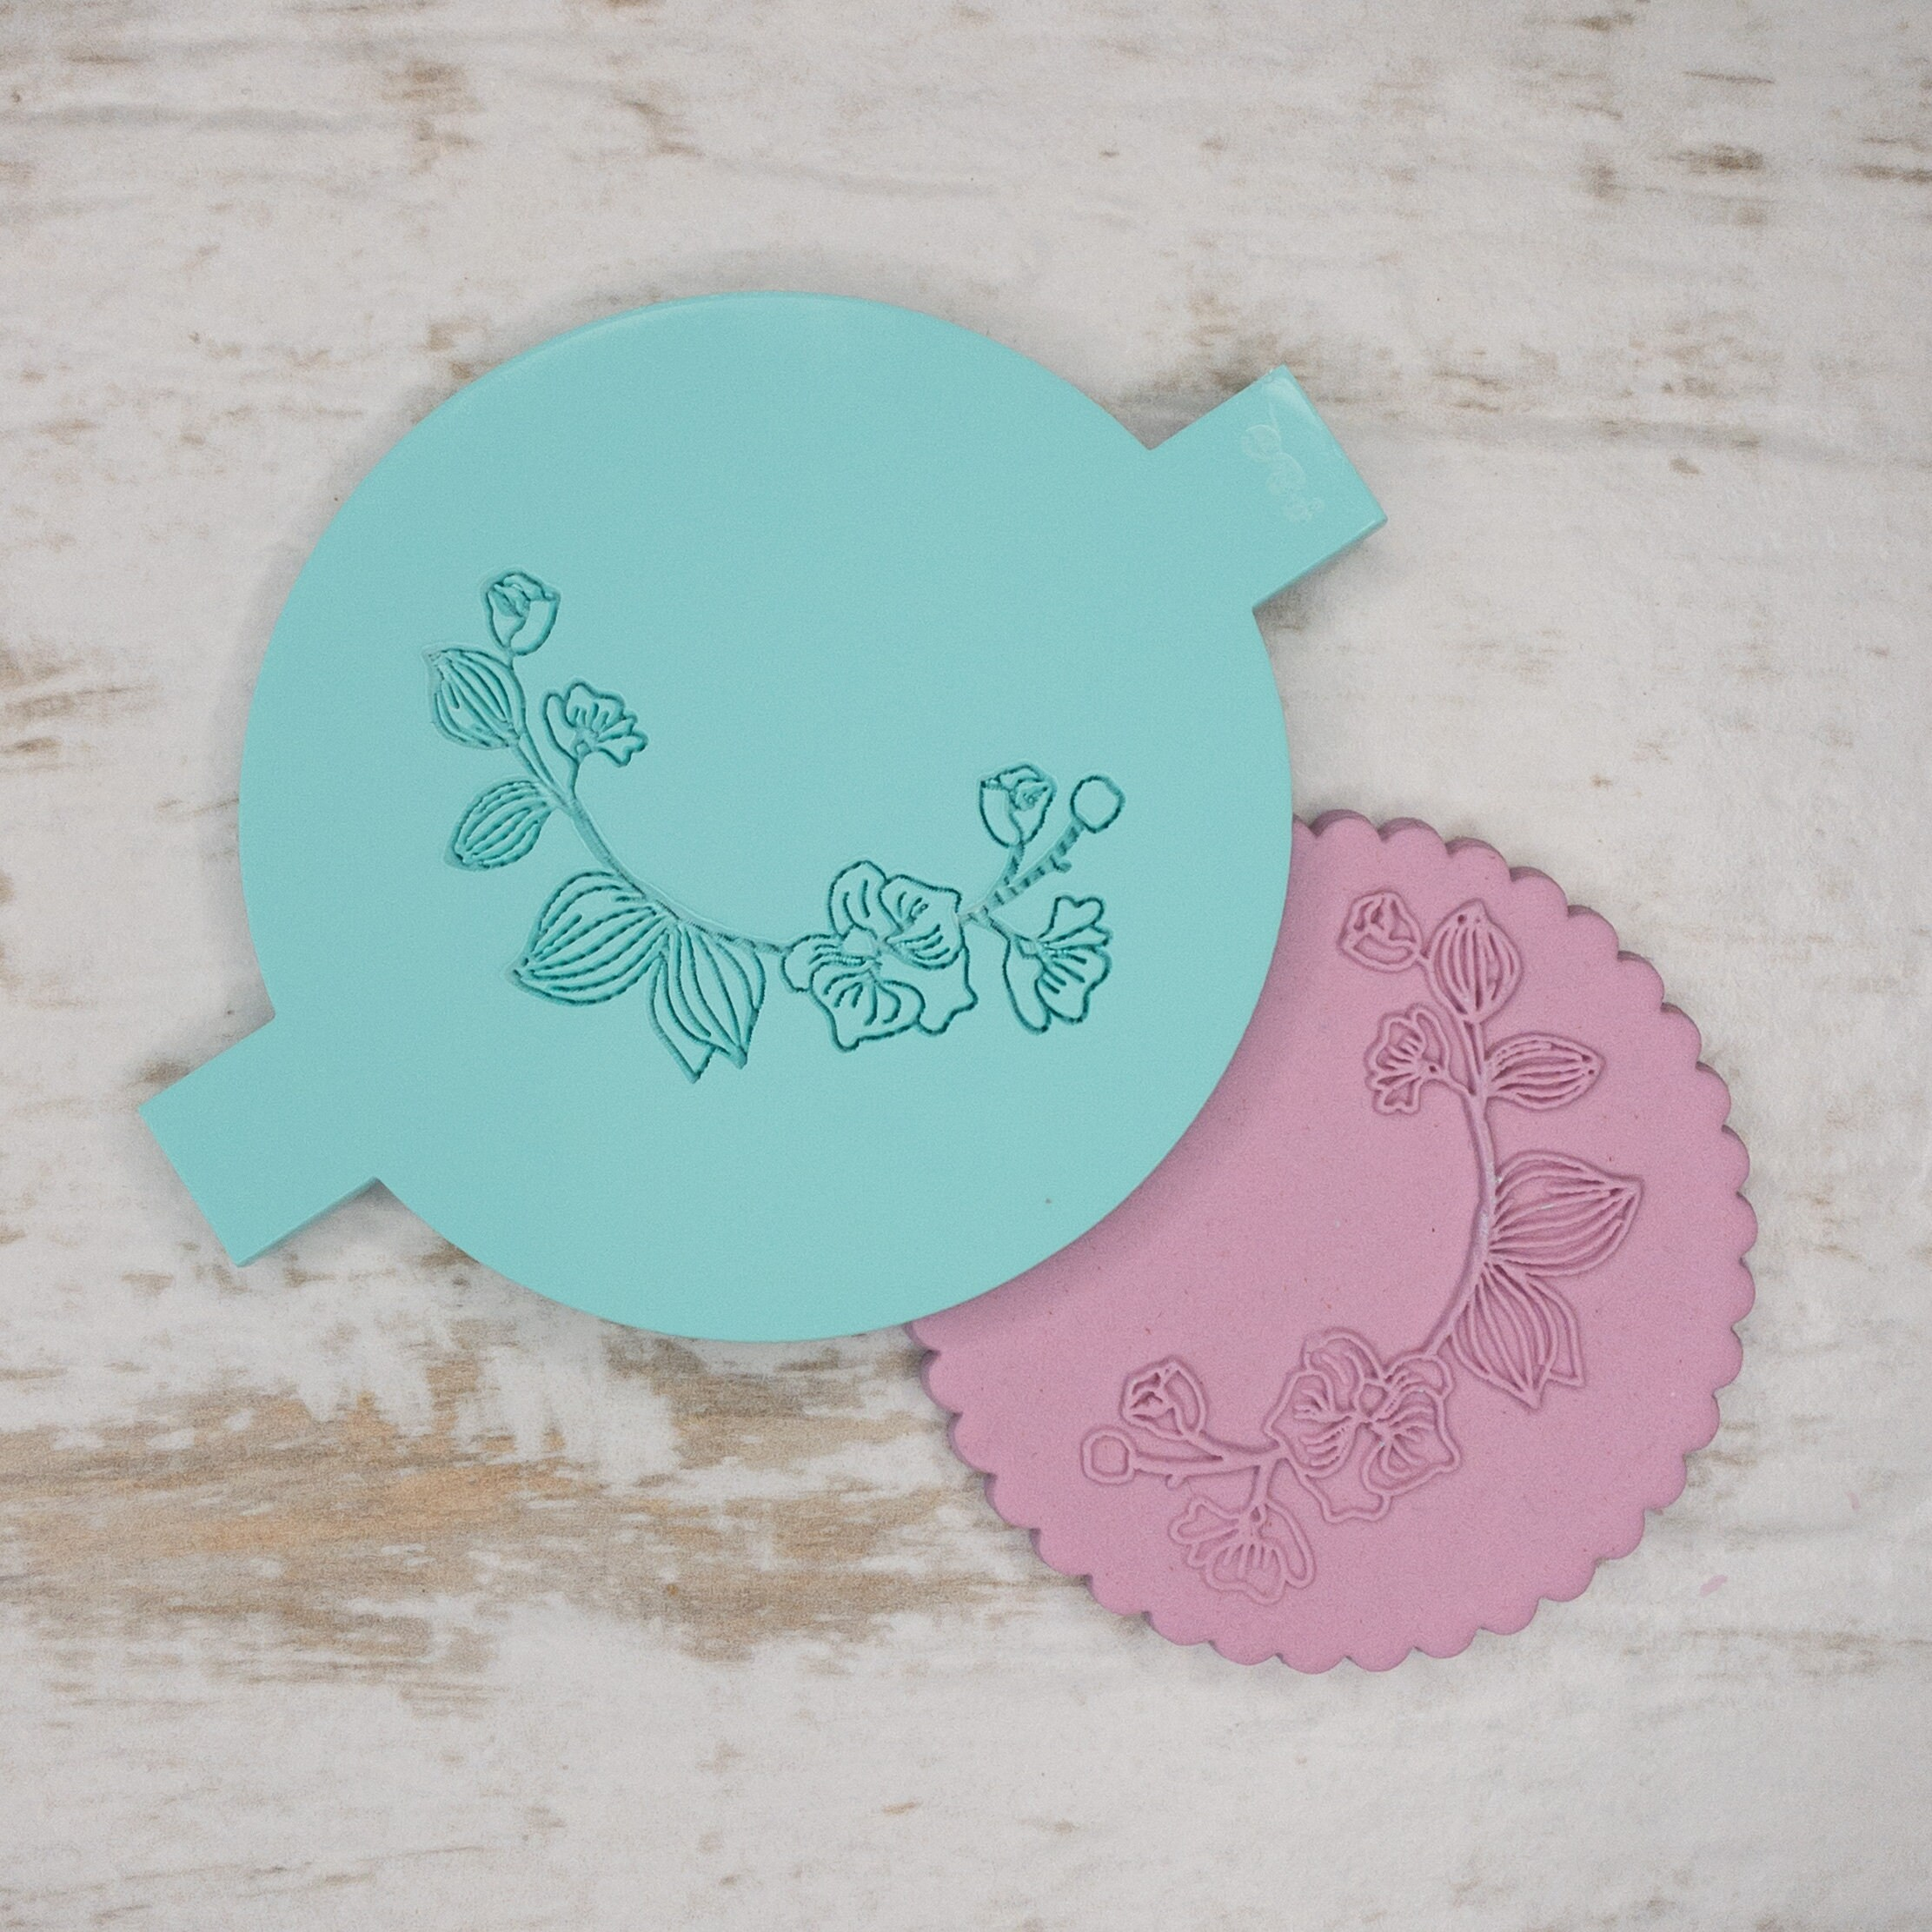 Orchid Detail Biscuit Cookie POPup Embosser Stamp Fondant Cake Decorating Icing